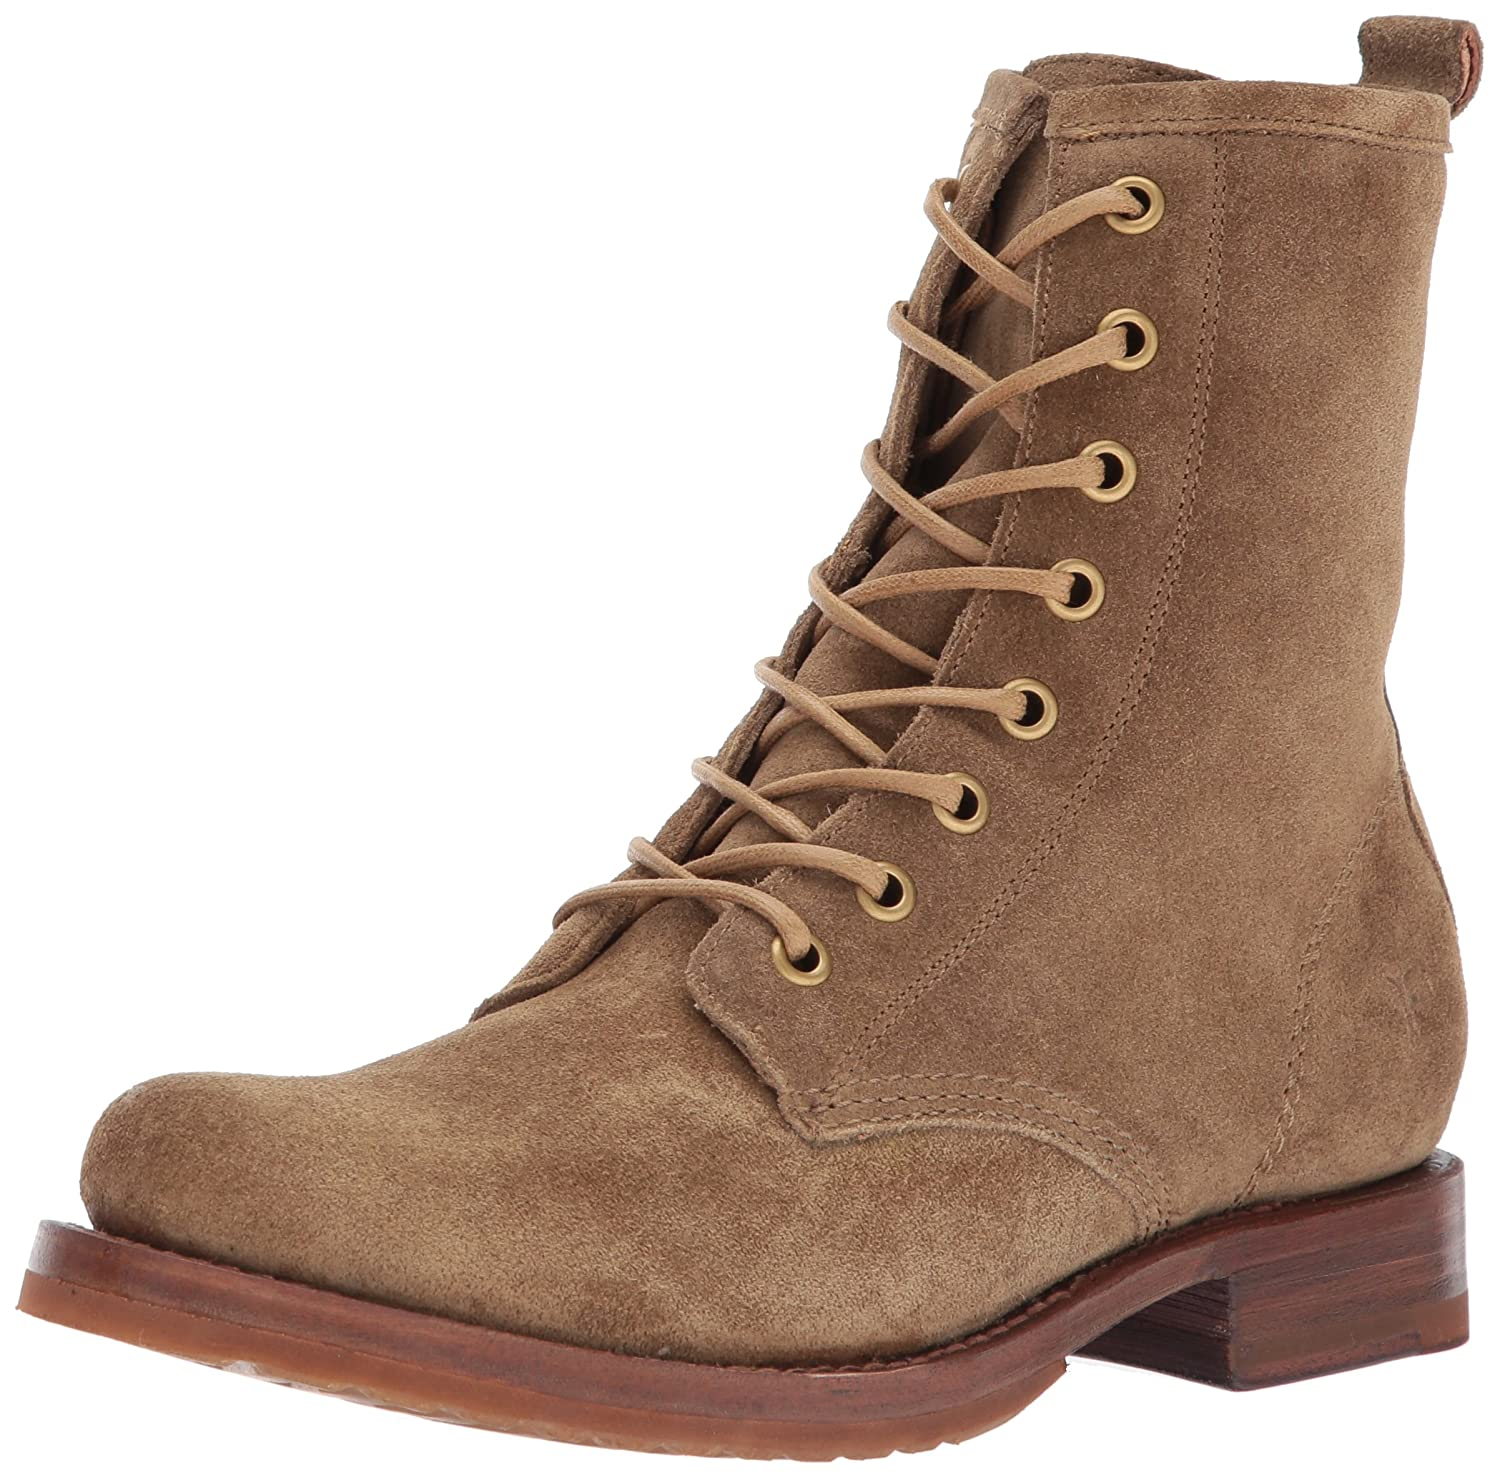 FRYE Women's Veronica Combat Boot 6PM Frye Footwear